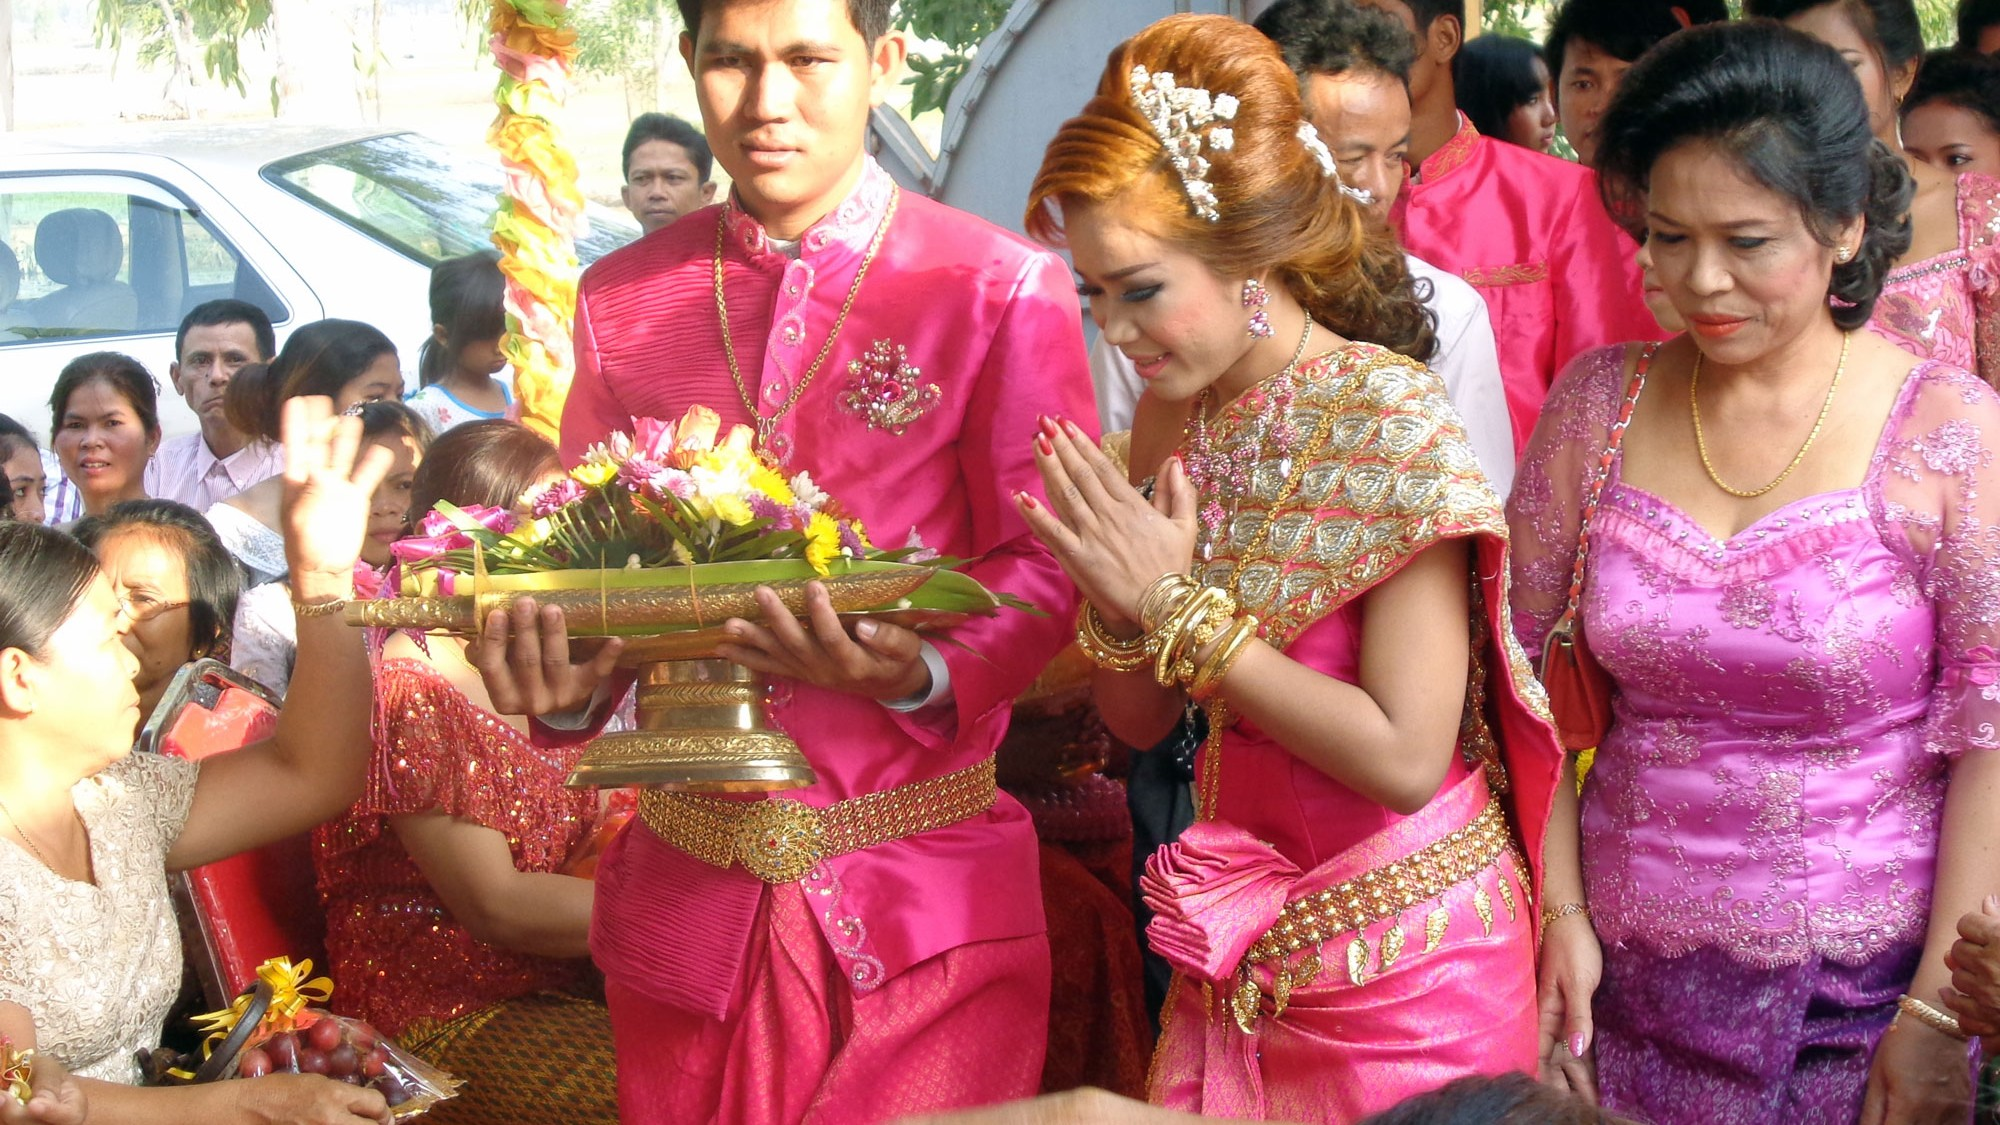 khmer-wedding-cambodia6